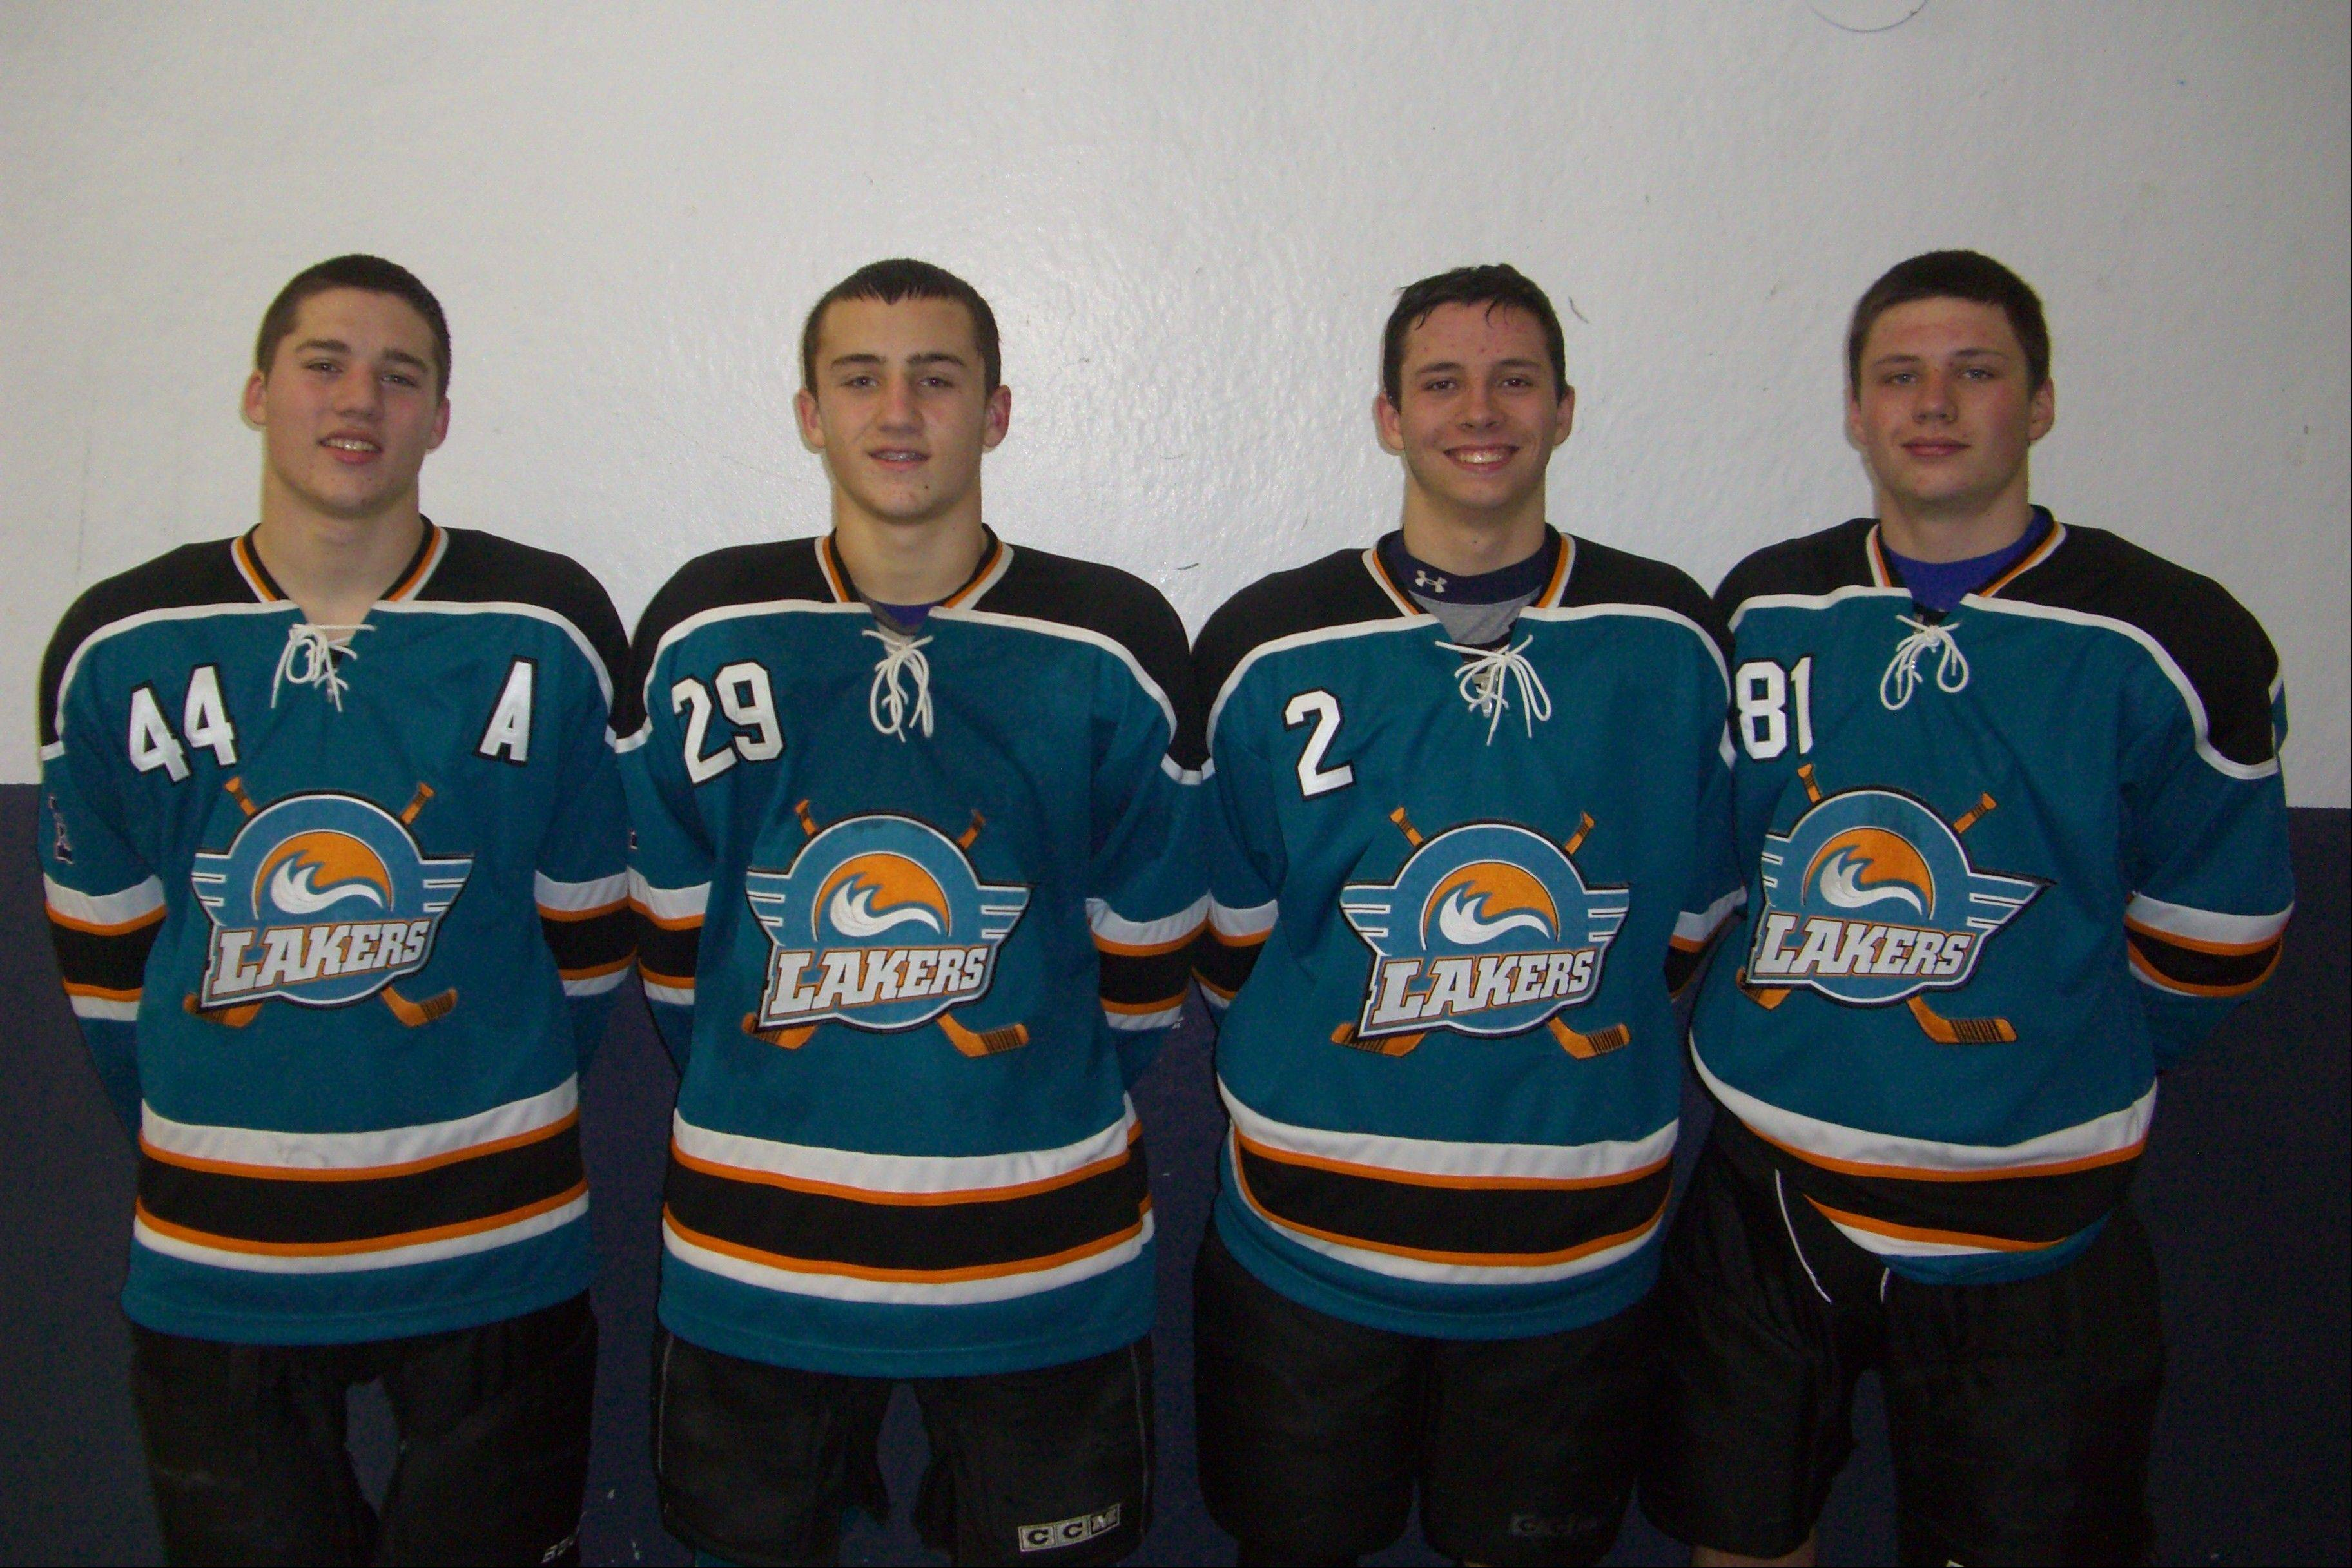 The Lakers hockey team features a pair of rugged brother tandems: Brandon Brumm (44) and Cody Brumm (29) and Anthony Conn (2) and Nikko Conn (81)